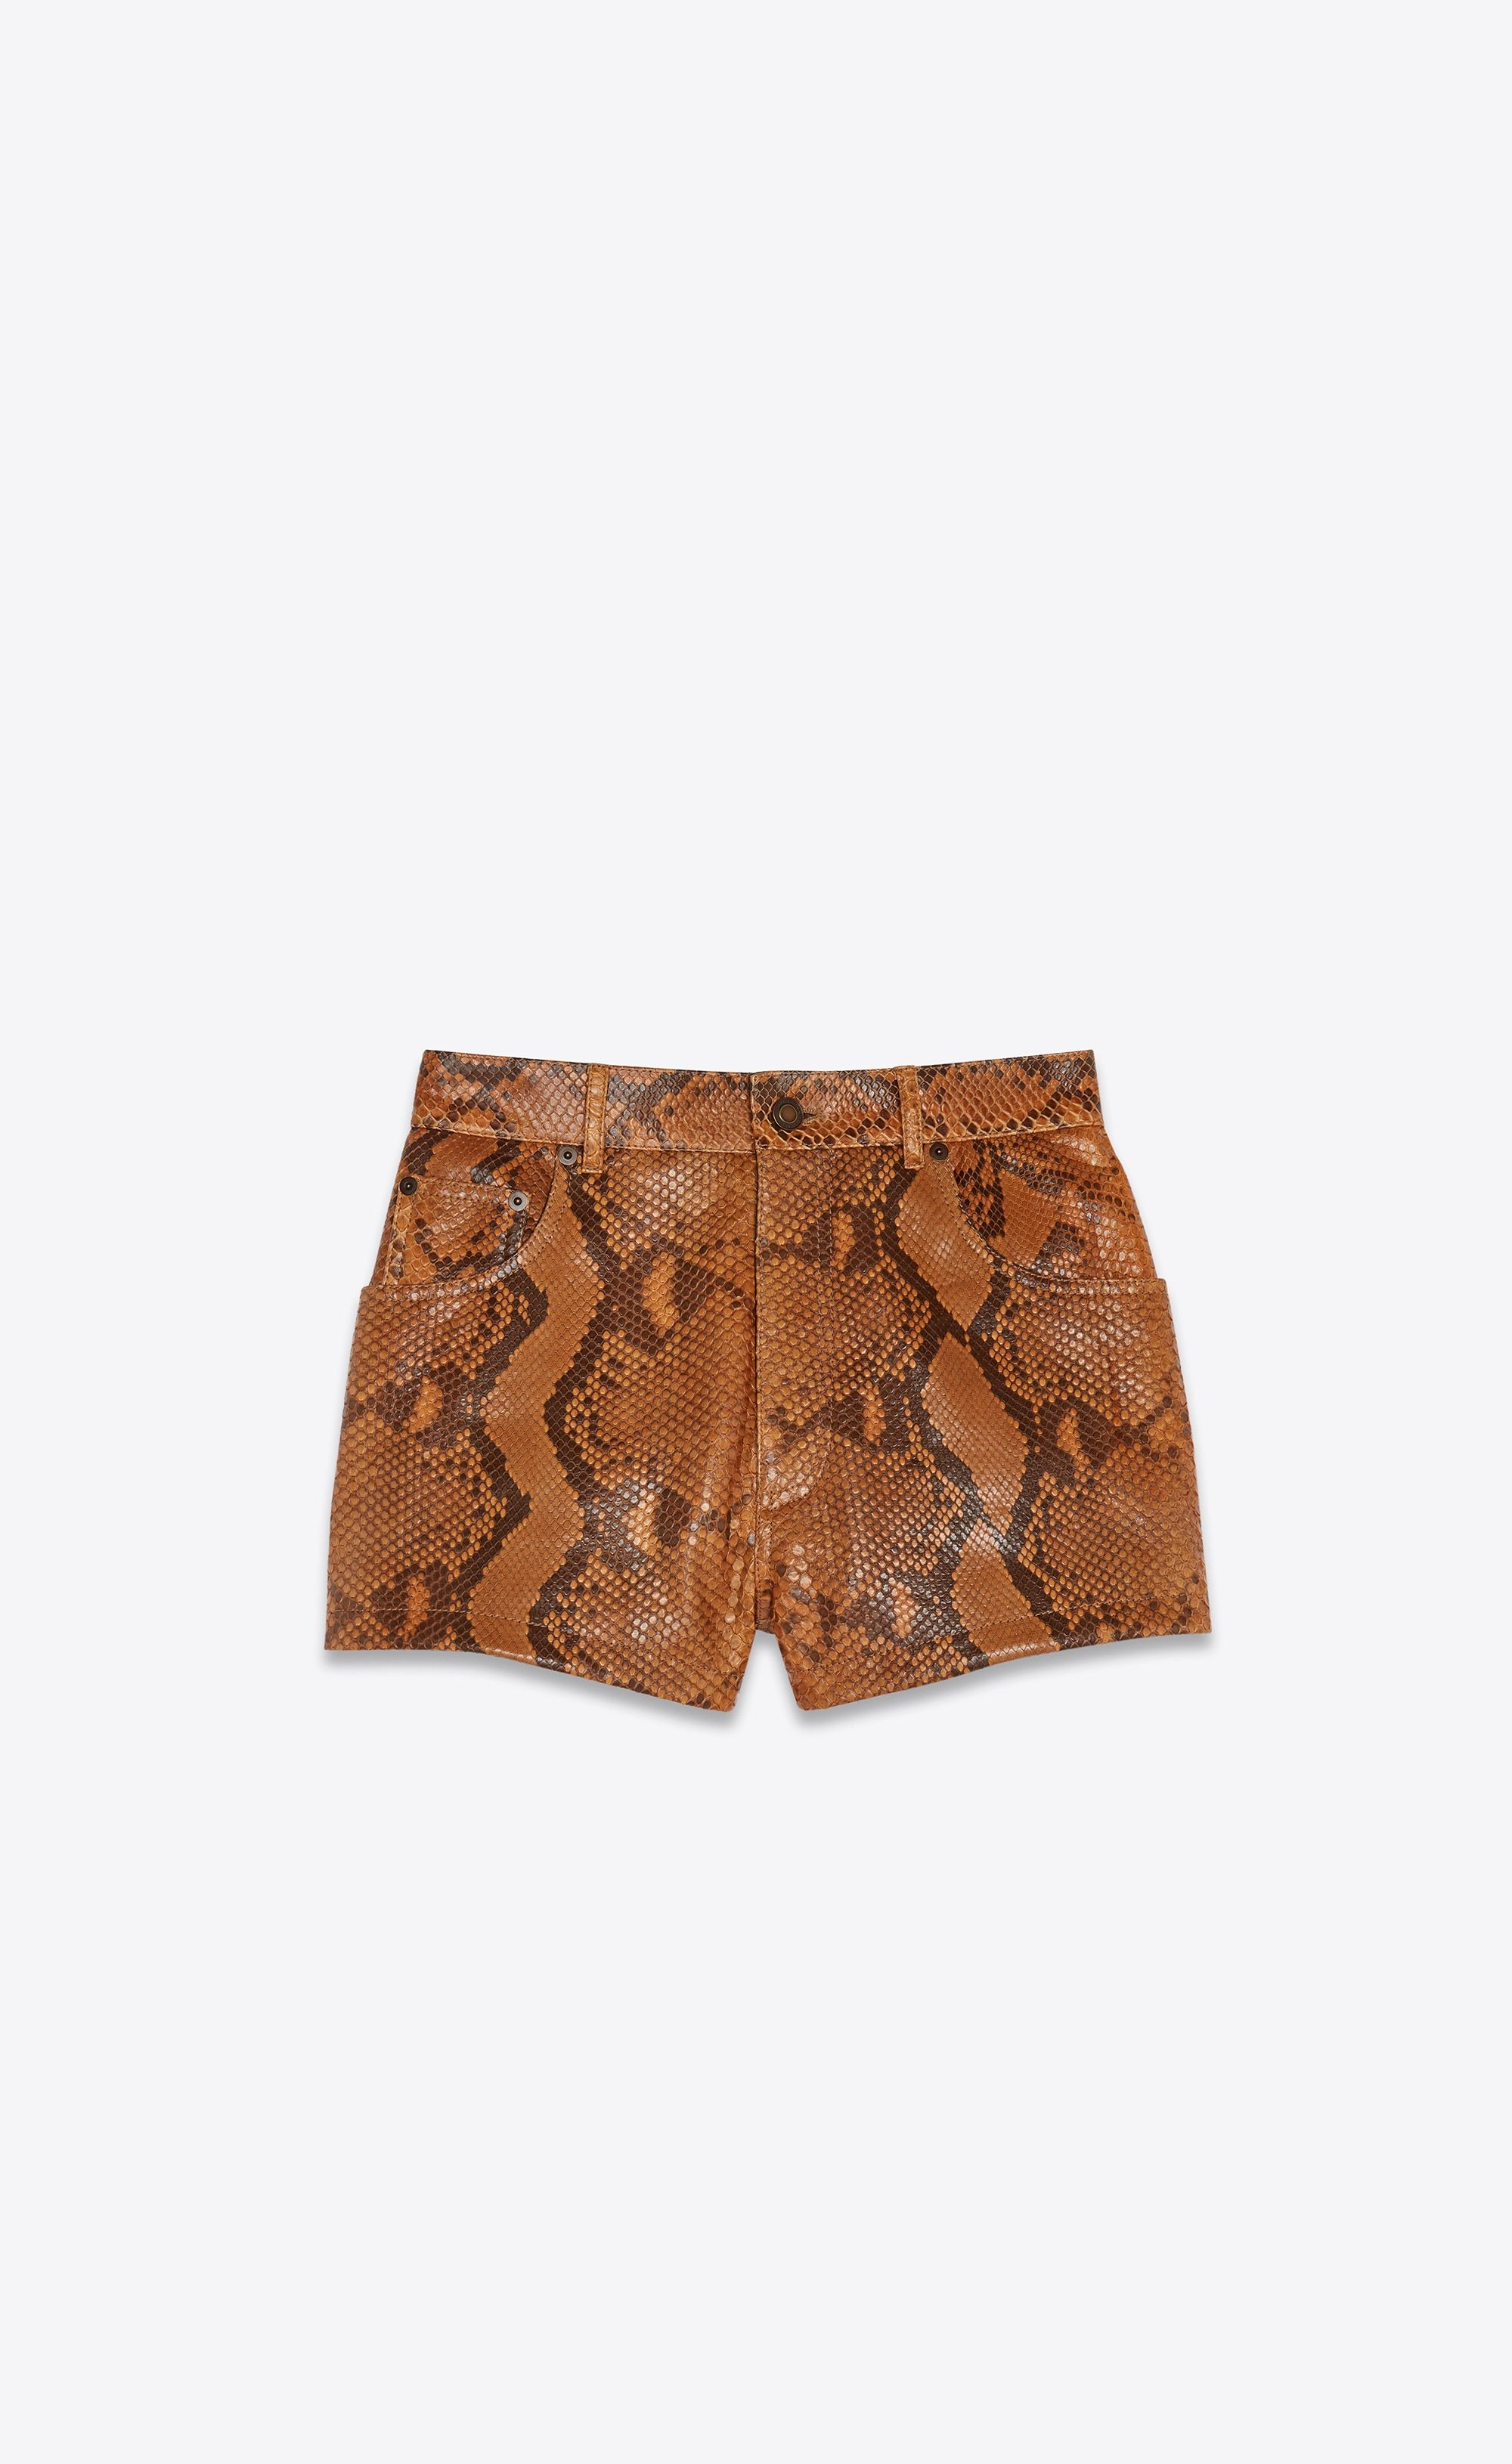 8f489a7d79 Saint Laurent Python Shorts | YSL.com | ysl in 2019 | Shorts ...